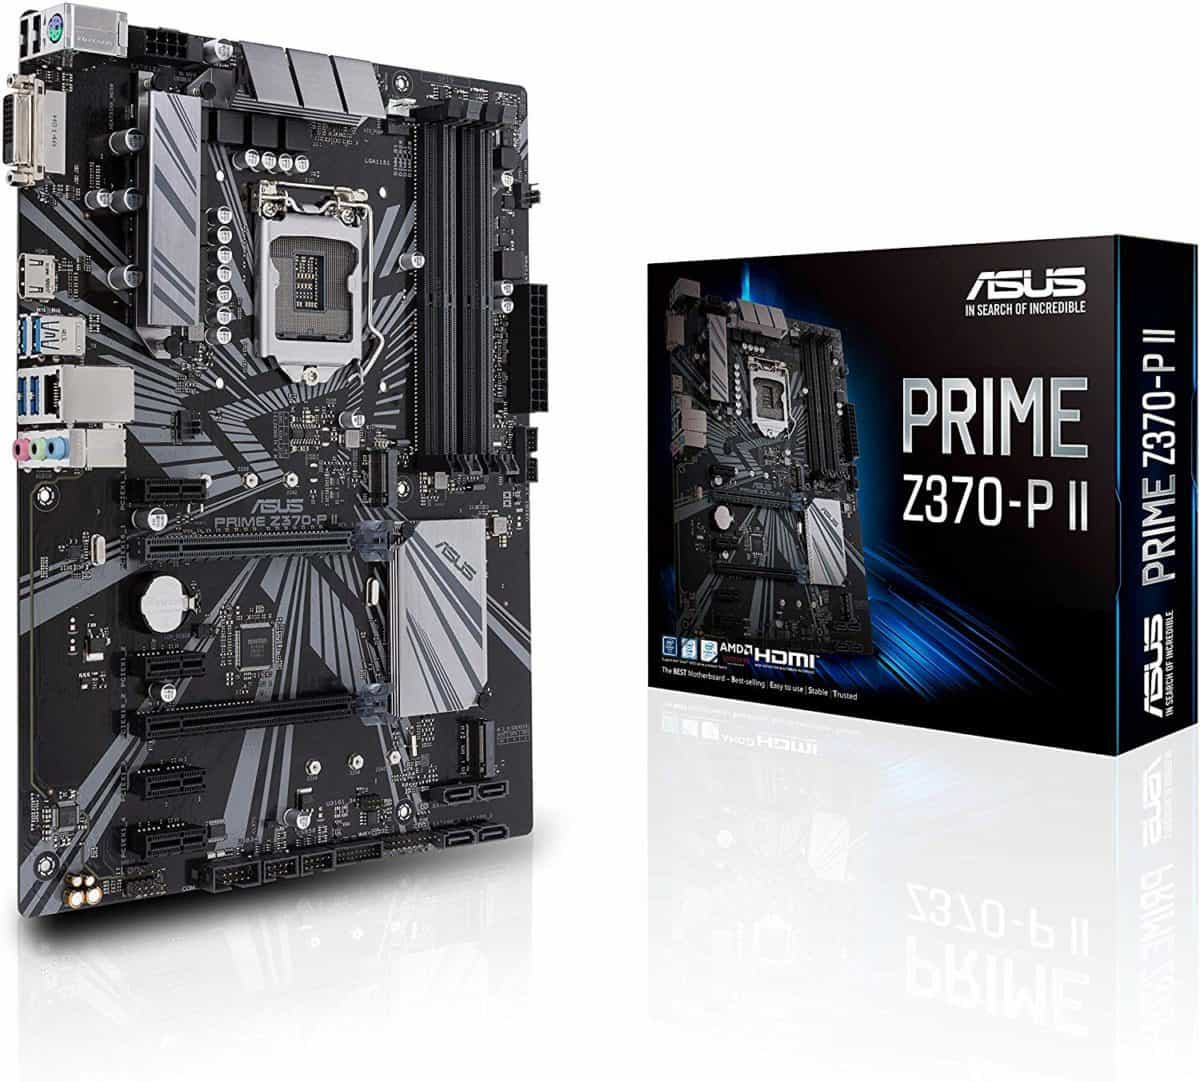 Asus Prime Z370-P II LGA1151 (Intel 9th Gen)